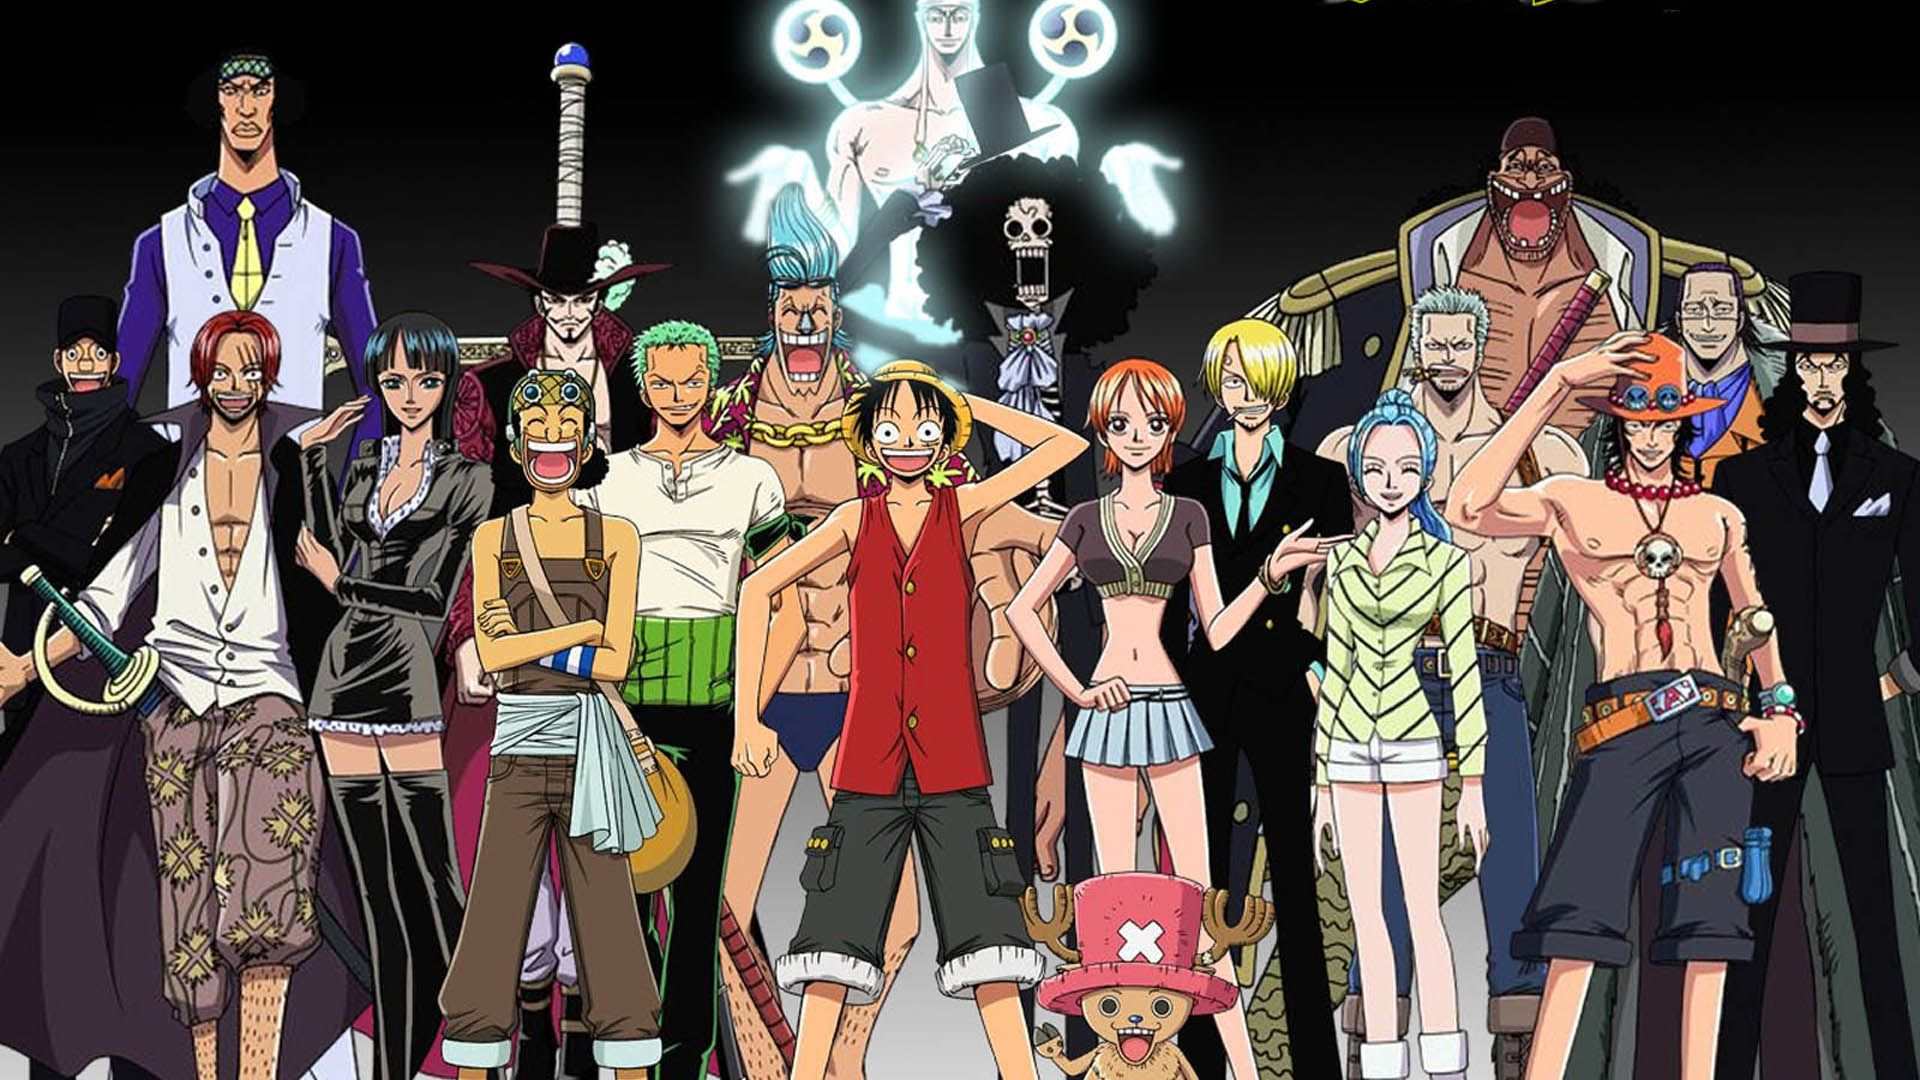 d one piece wallpaper wallpaper hd collection 1920×1080 wallpapers